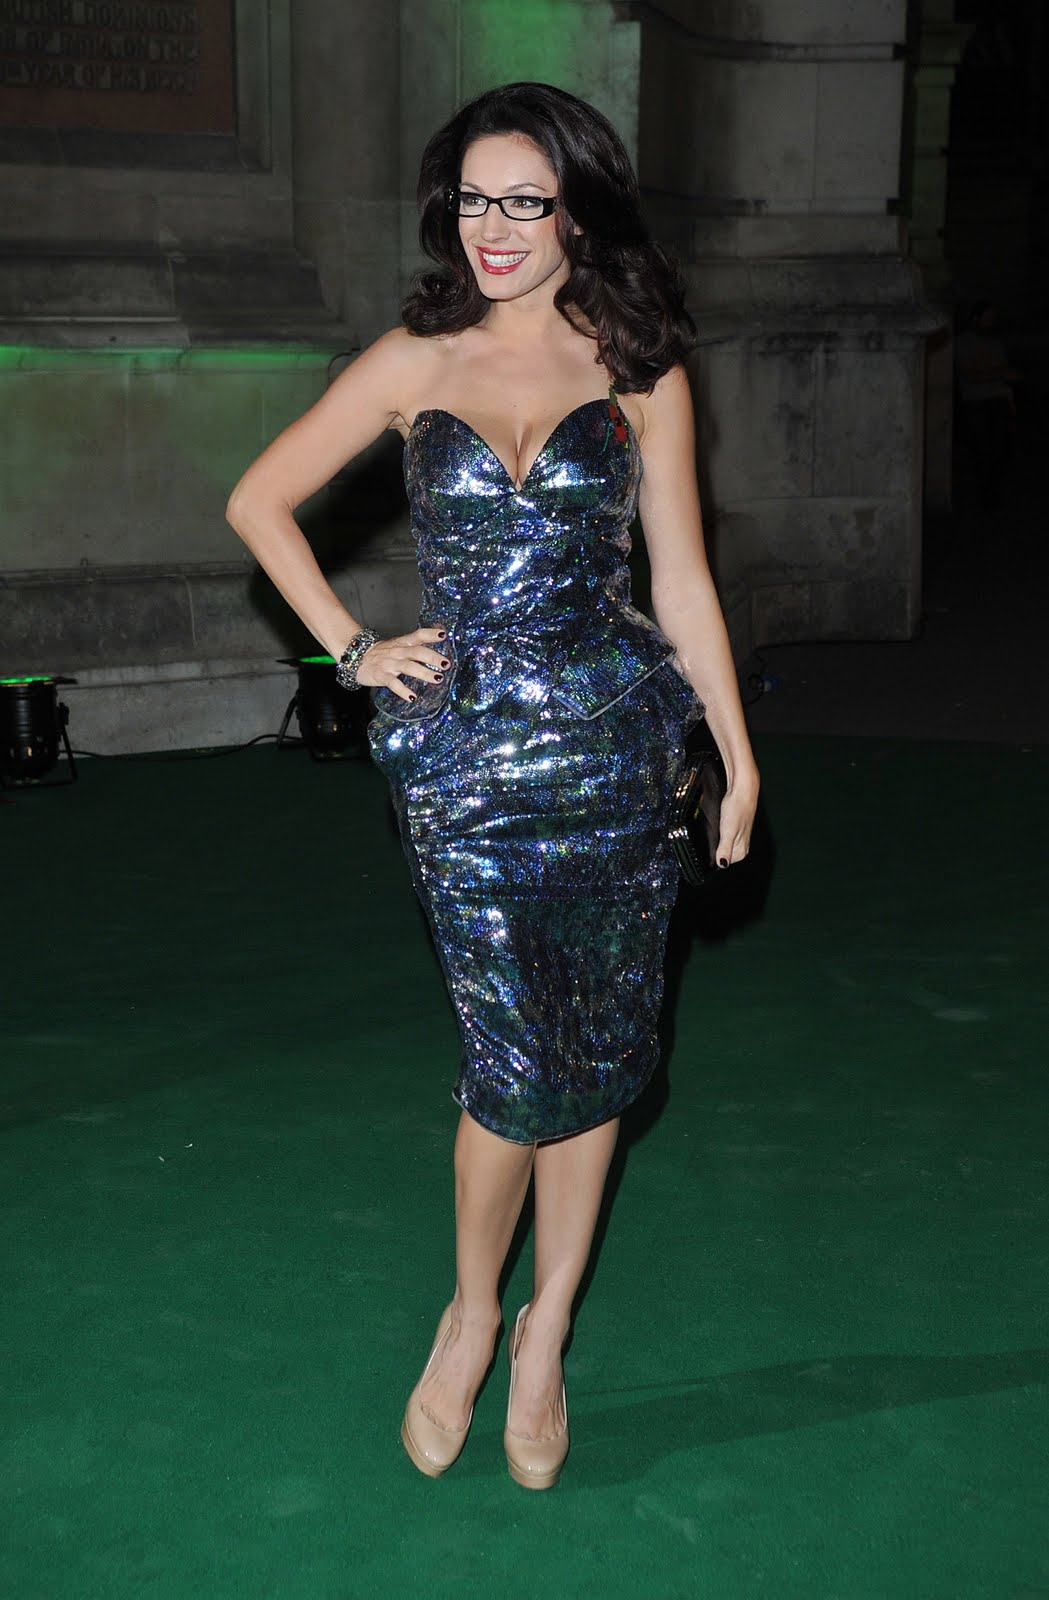 http://1.bp.blogspot.com/_LTi0R8IRkIs/TNxGOTXN4rI/AAAAAAAAE2w/Ro9aDyieNzU/s1600/Kelly_Brook_Spectacle_Wearer_Of_The_Year_Awards_007_123_207lo.jpg